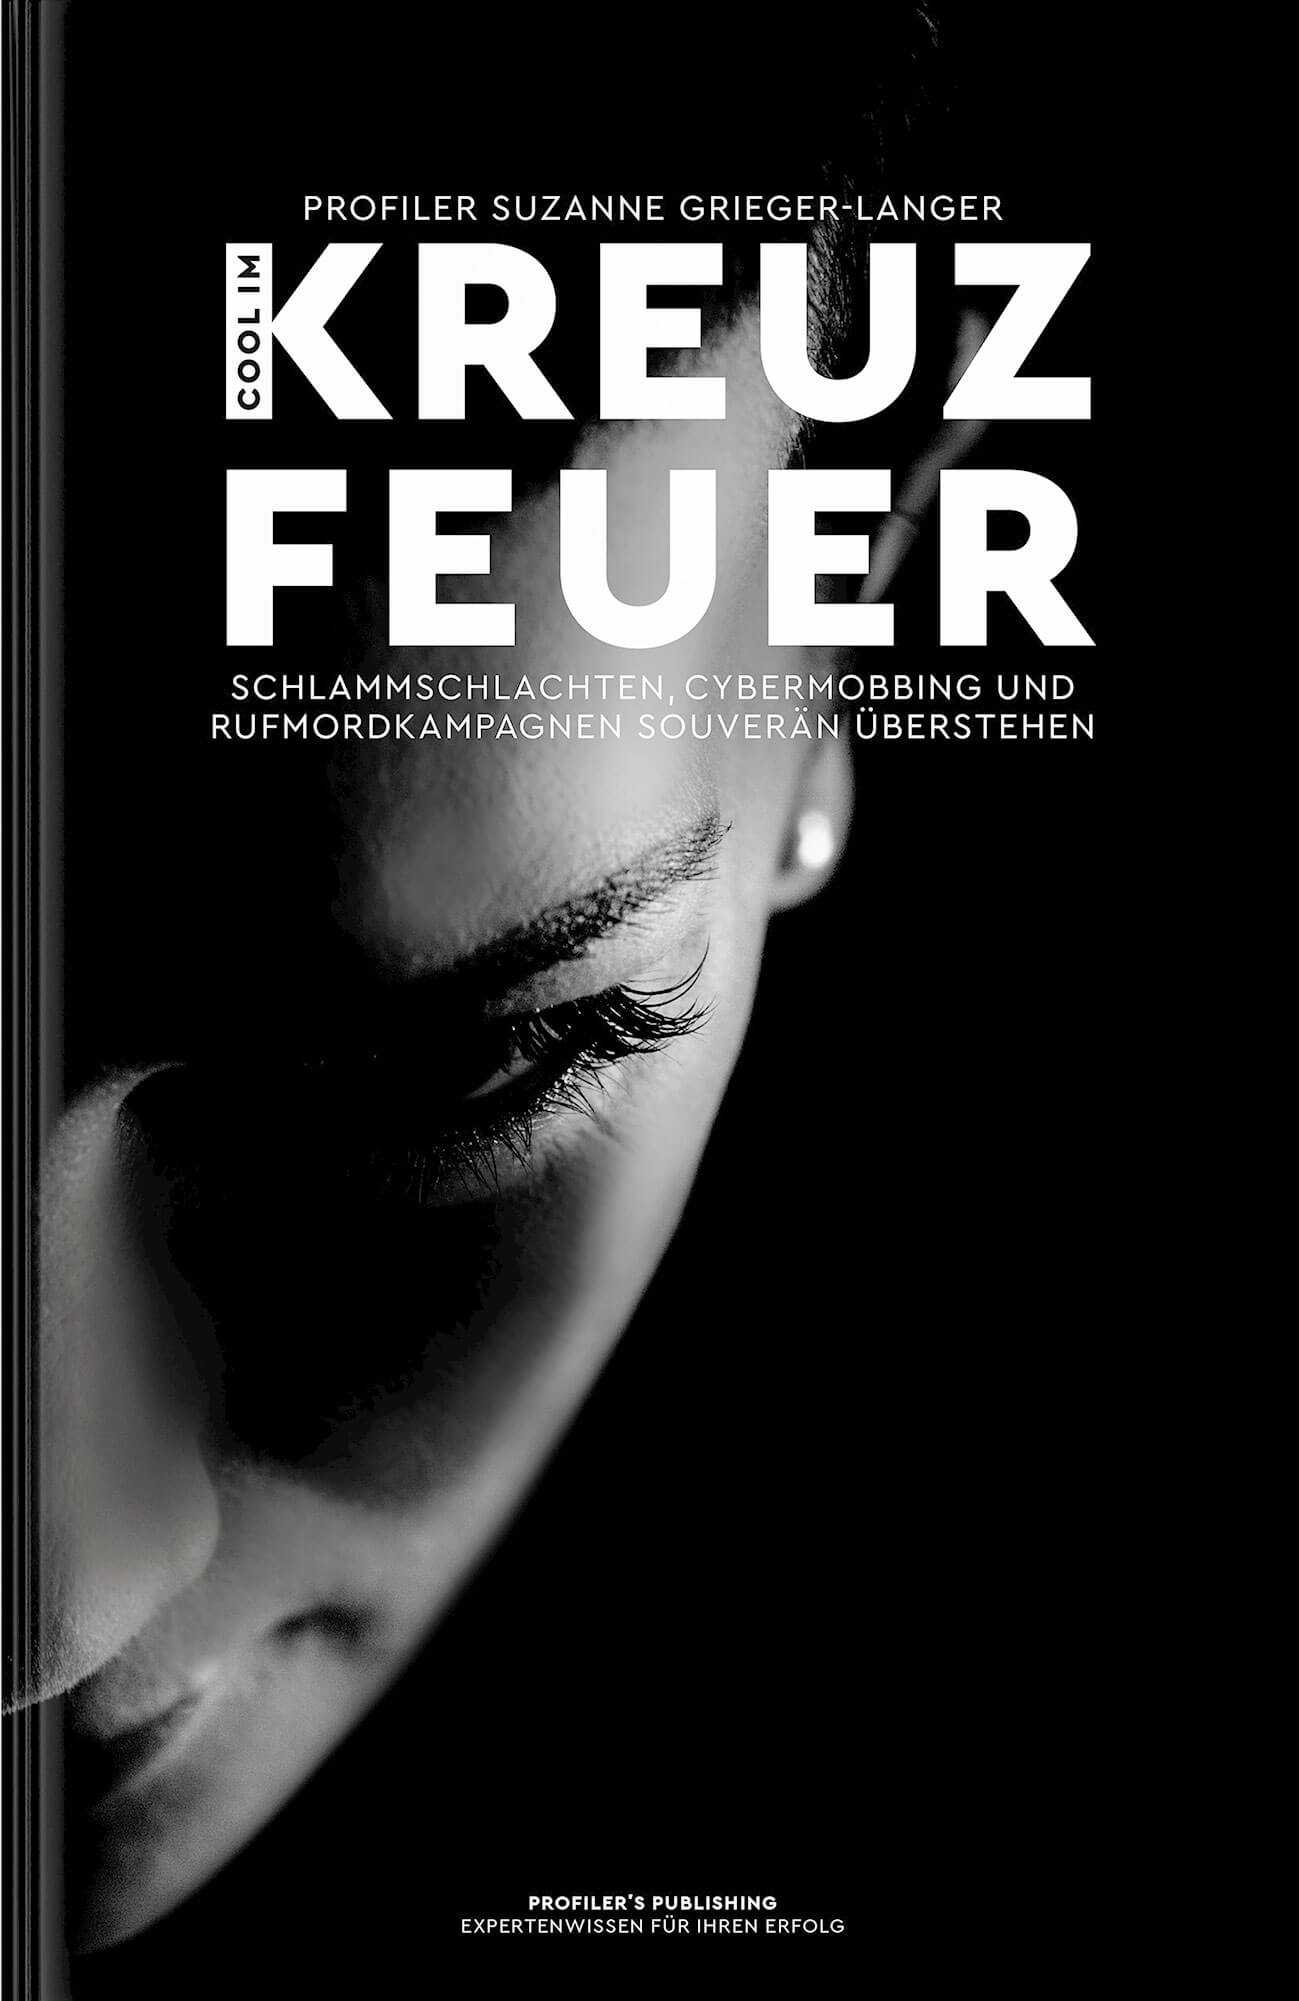 Profiler-Suzanne-Cool-im-Kreuzfeuer-Cover